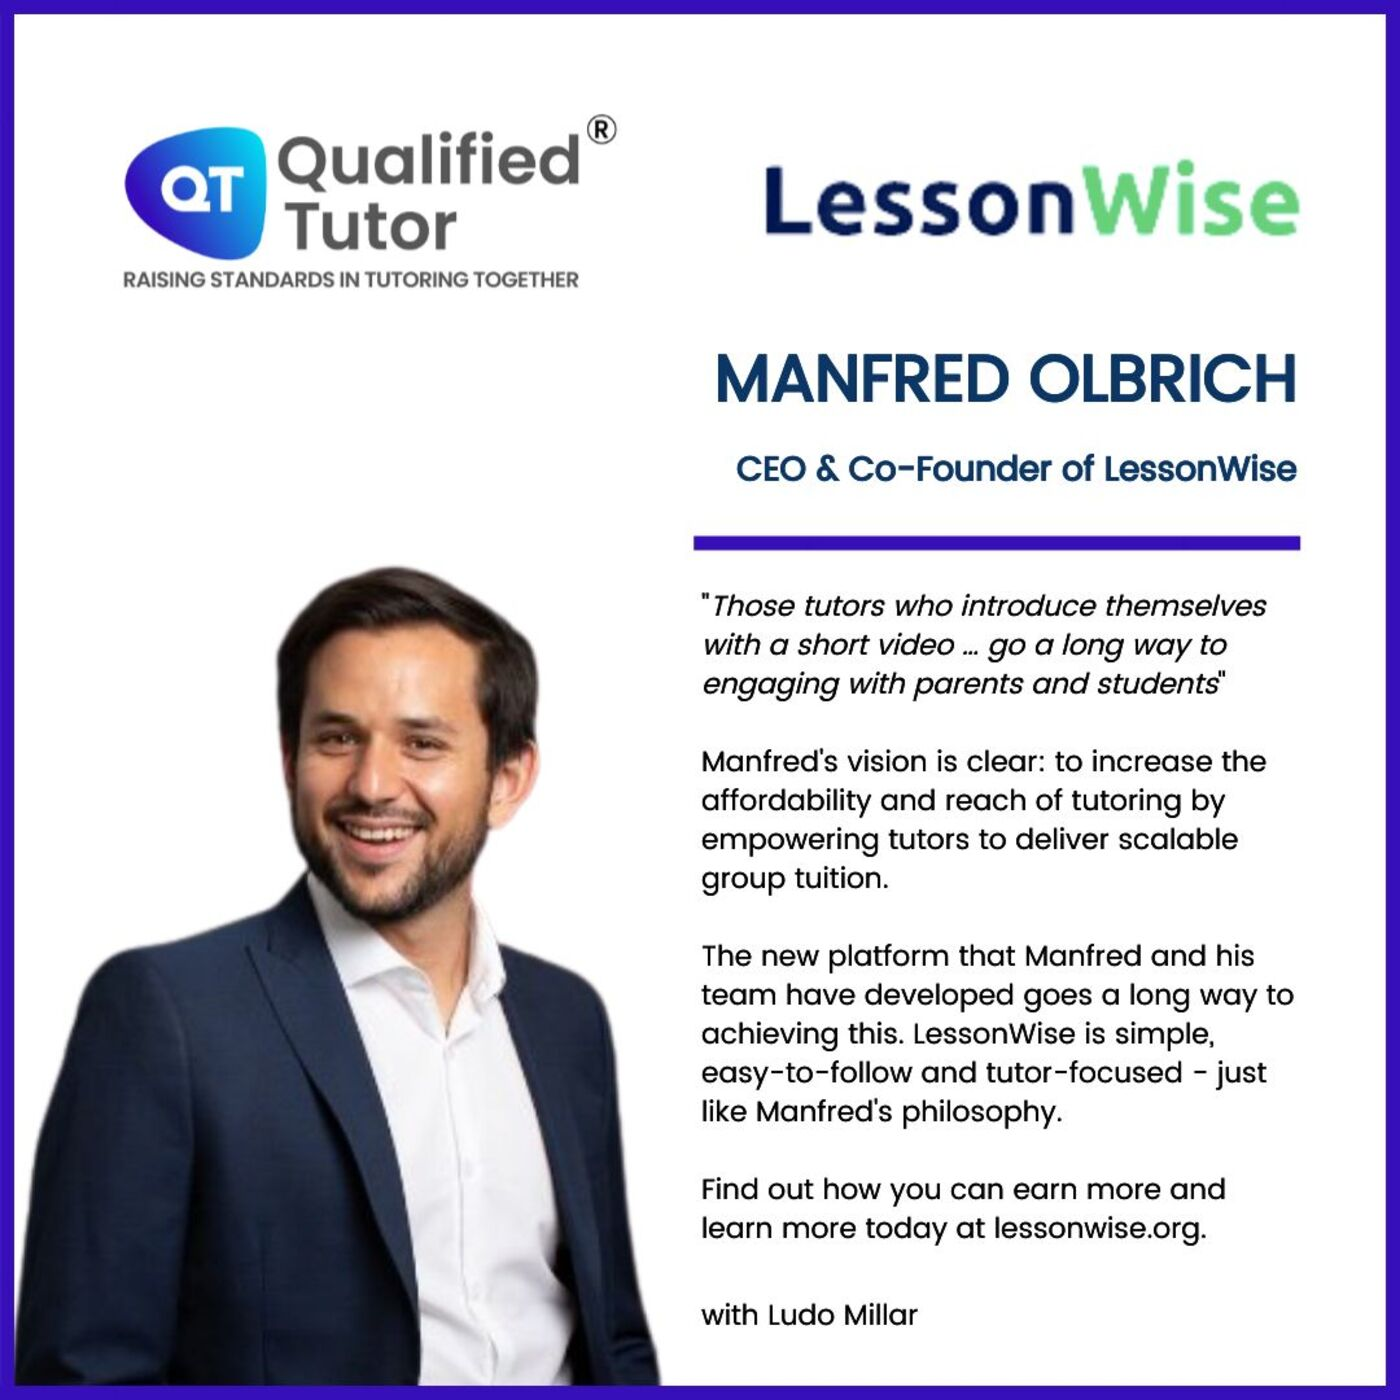 Manfred Olbrich's LessonWise: A New All-in-One Platform for Tutors and Students